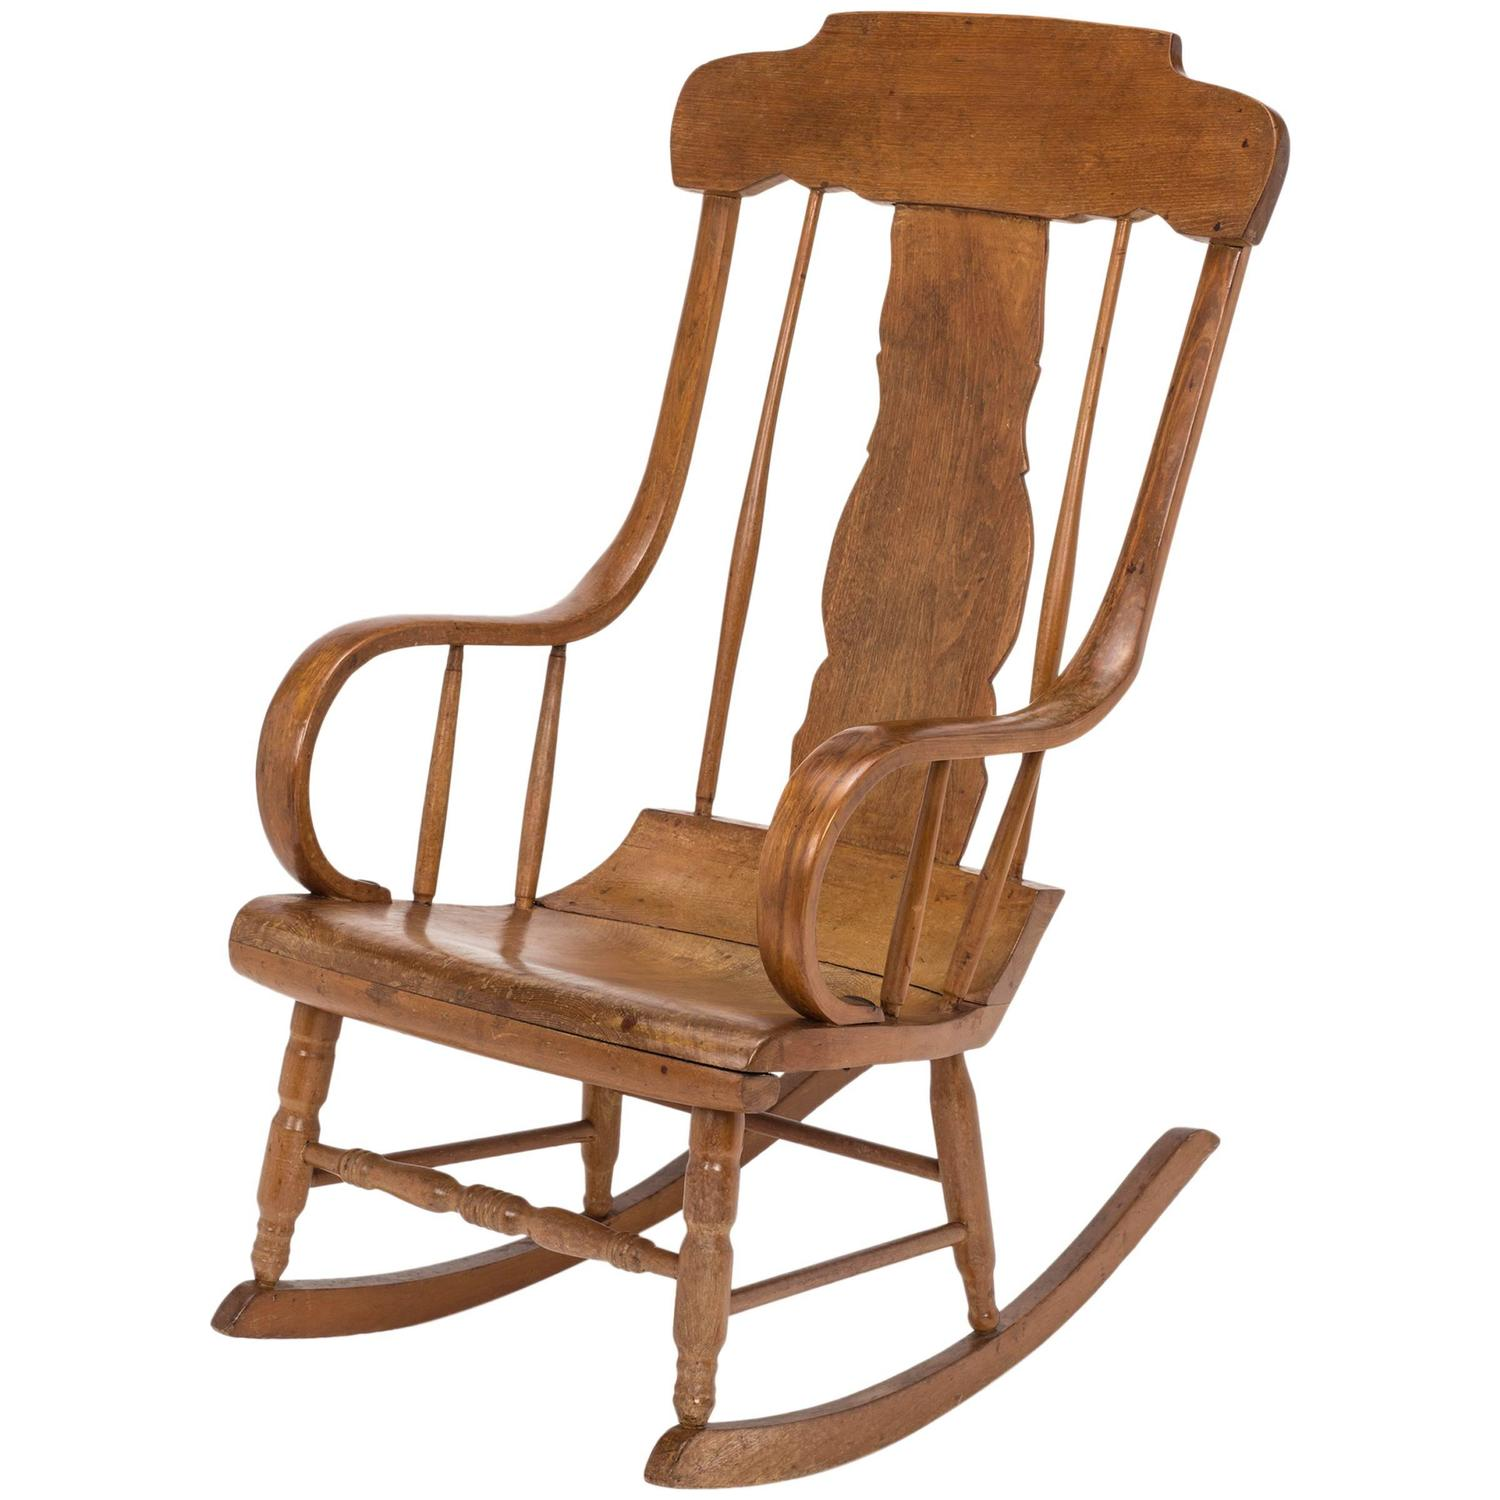 Swedish style rocking chair for sale at stdibs